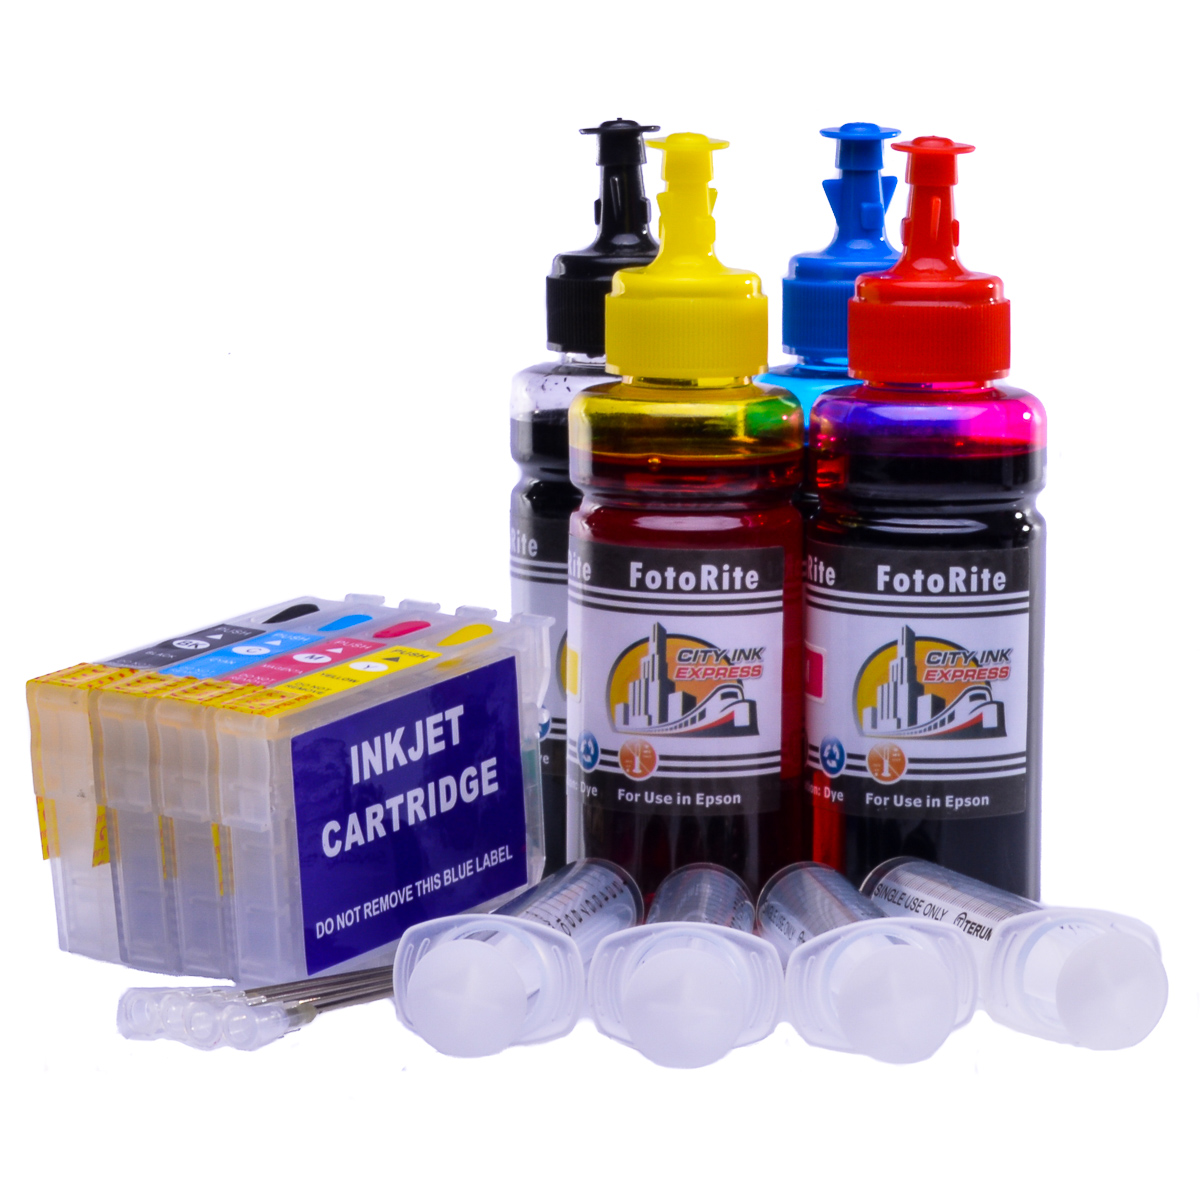 Multipack Cheap printer cartridges for Epson XP-405 | Refillable dye and pigment ink